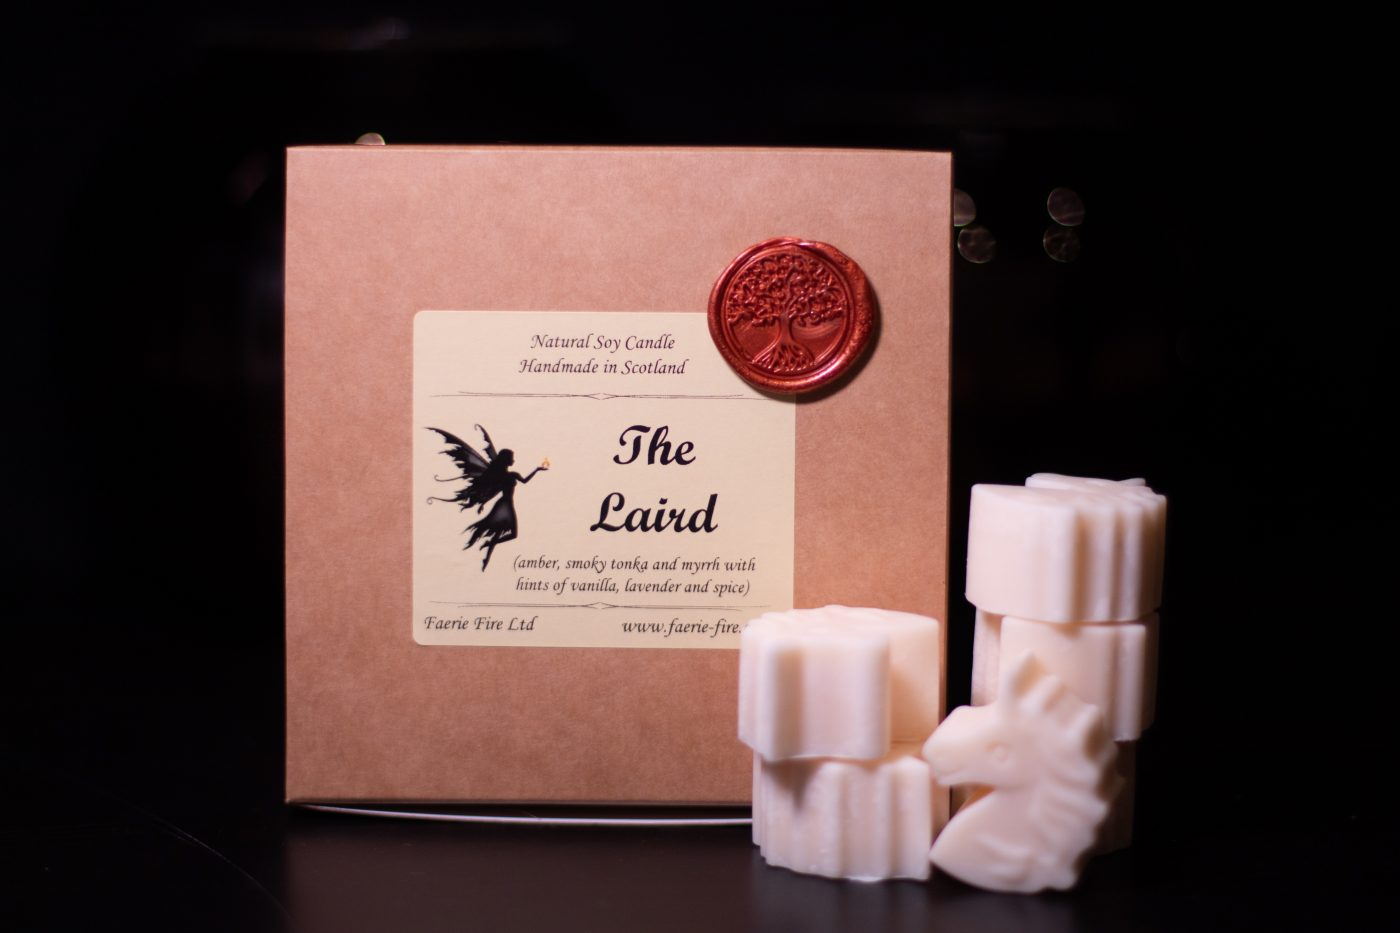 The Laird Soy Wax Melts scaled